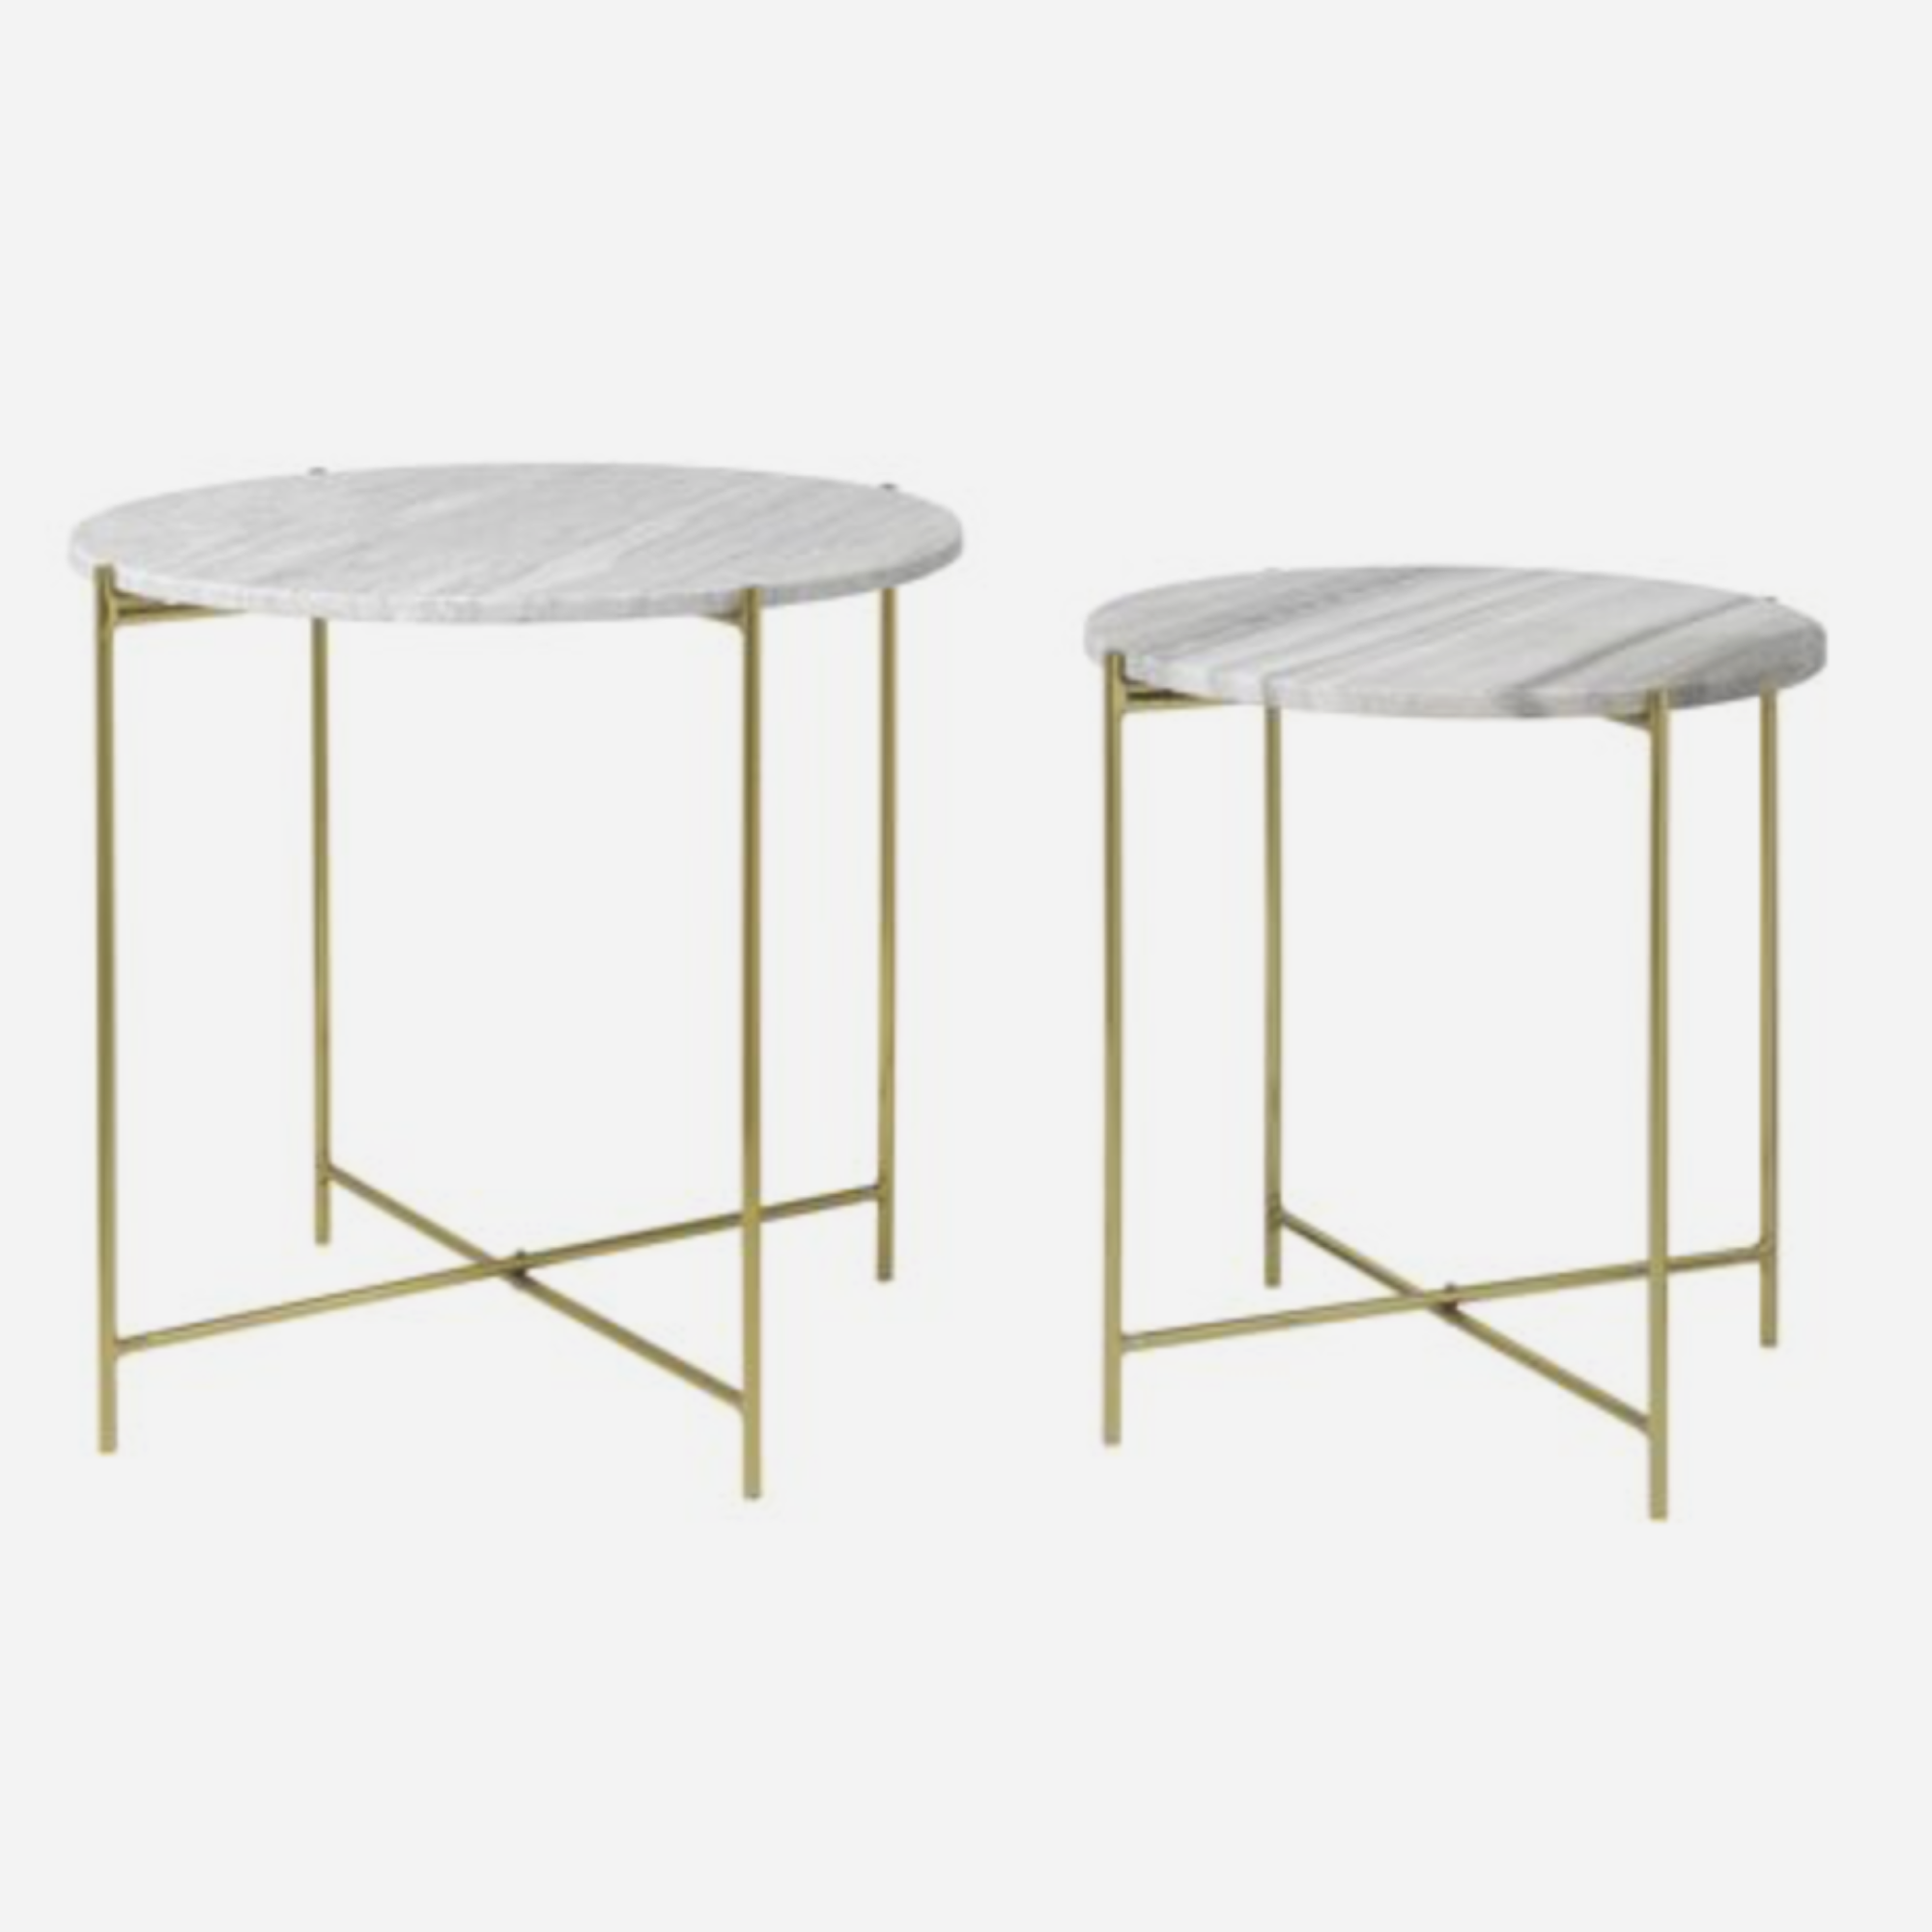 cozy living Marble table - beige/brass - s2 fra nordlyhome.dk